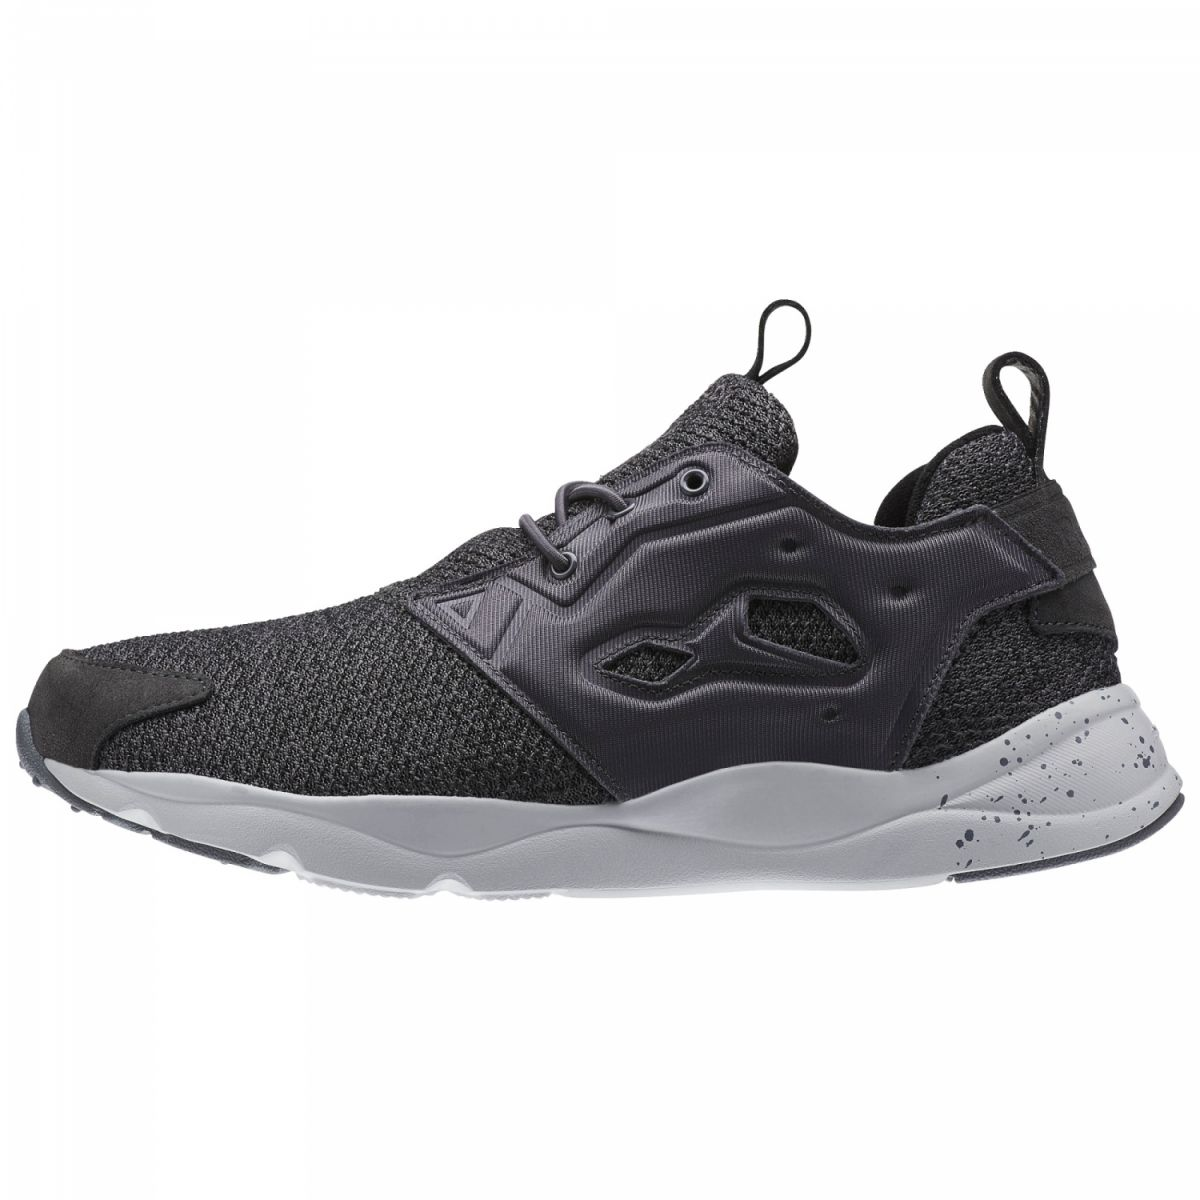 reebok furylite gw sneaker herren grau aq9672 sport klingenmaier. Black Bedroom Furniture Sets. Home Design Ideas